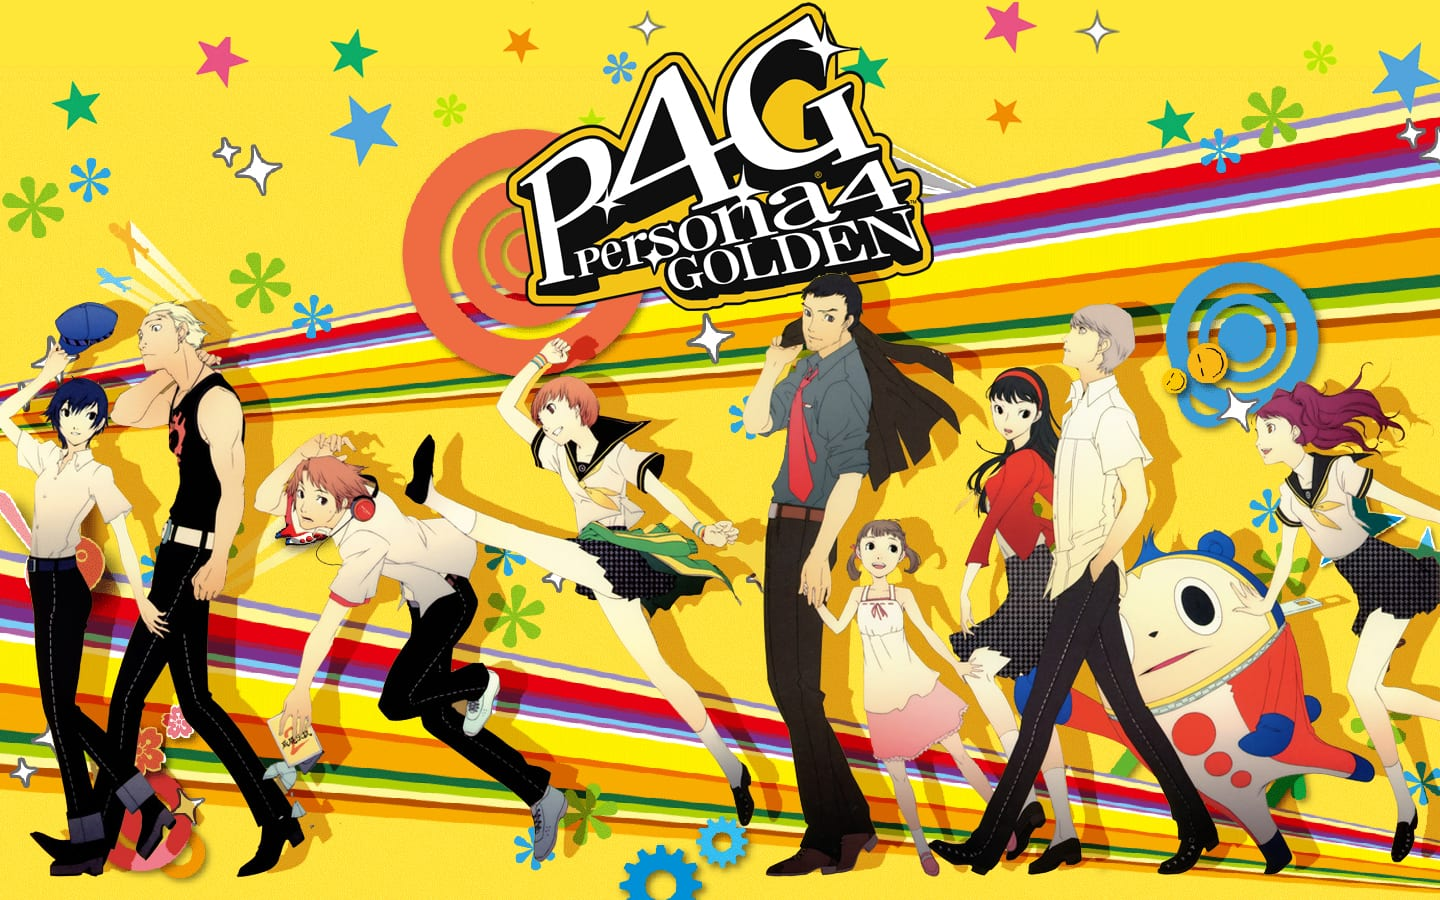 persona 4 golden perfect boxed lunches